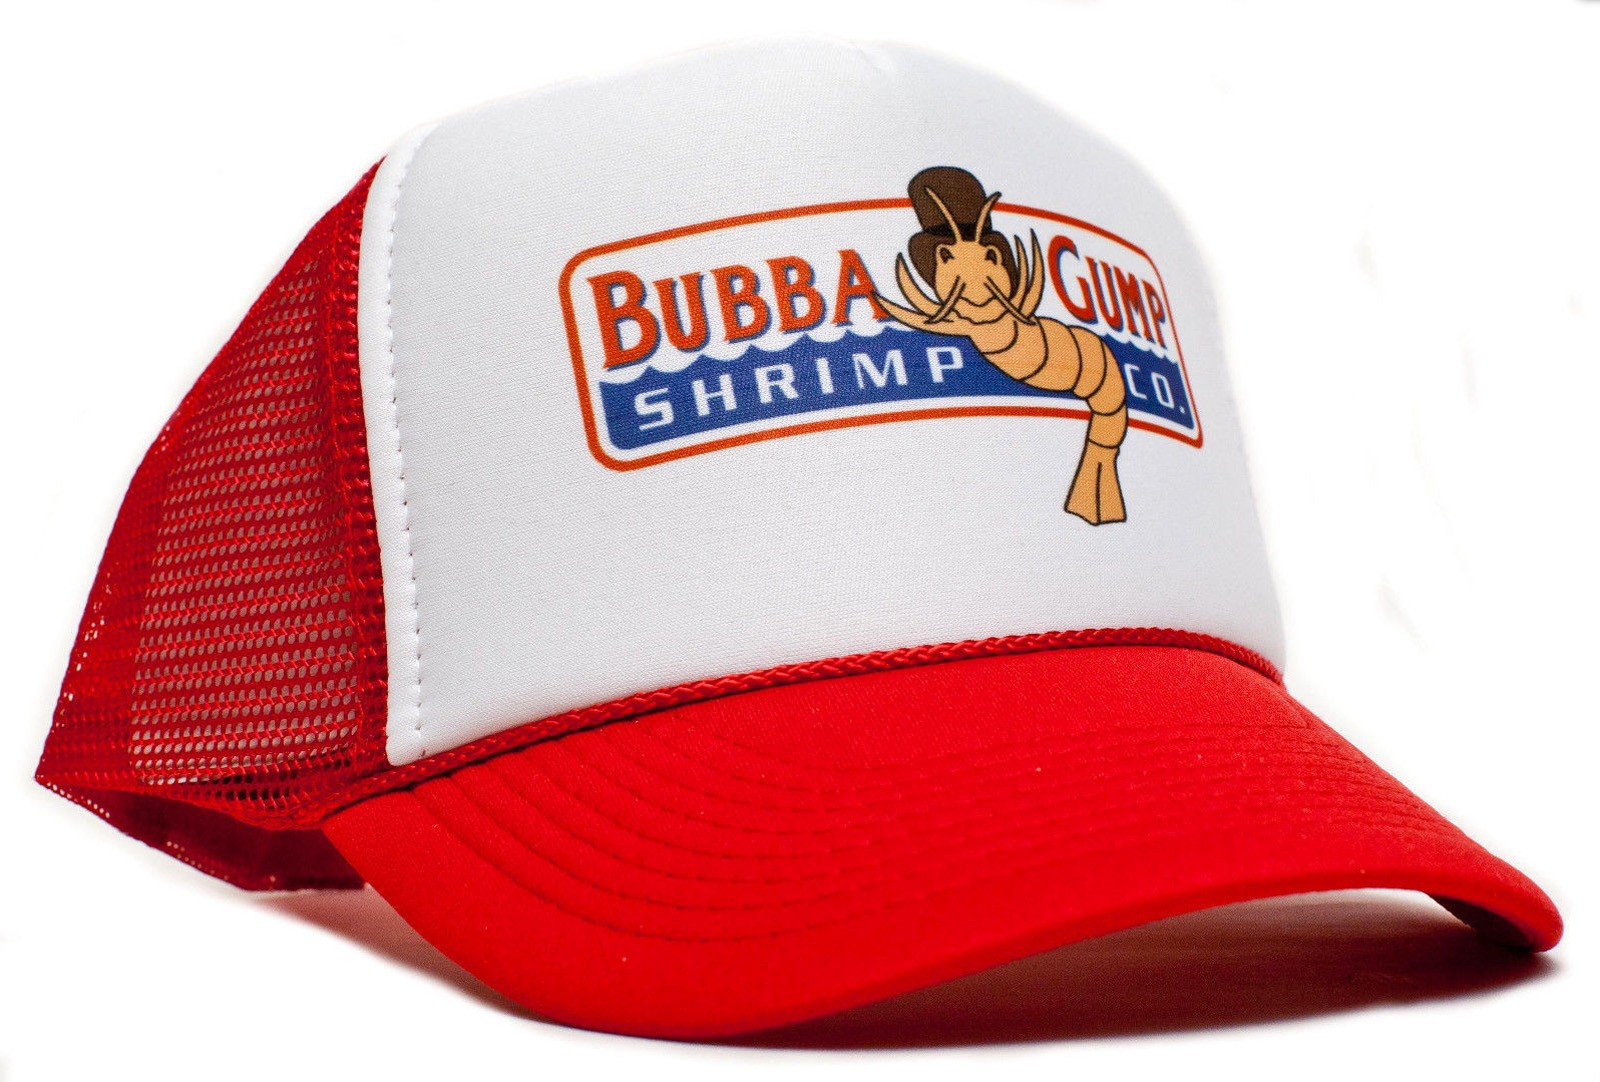 Retro Cap -  Bubba Gump Shrimp Co. Curved Snapback Cap